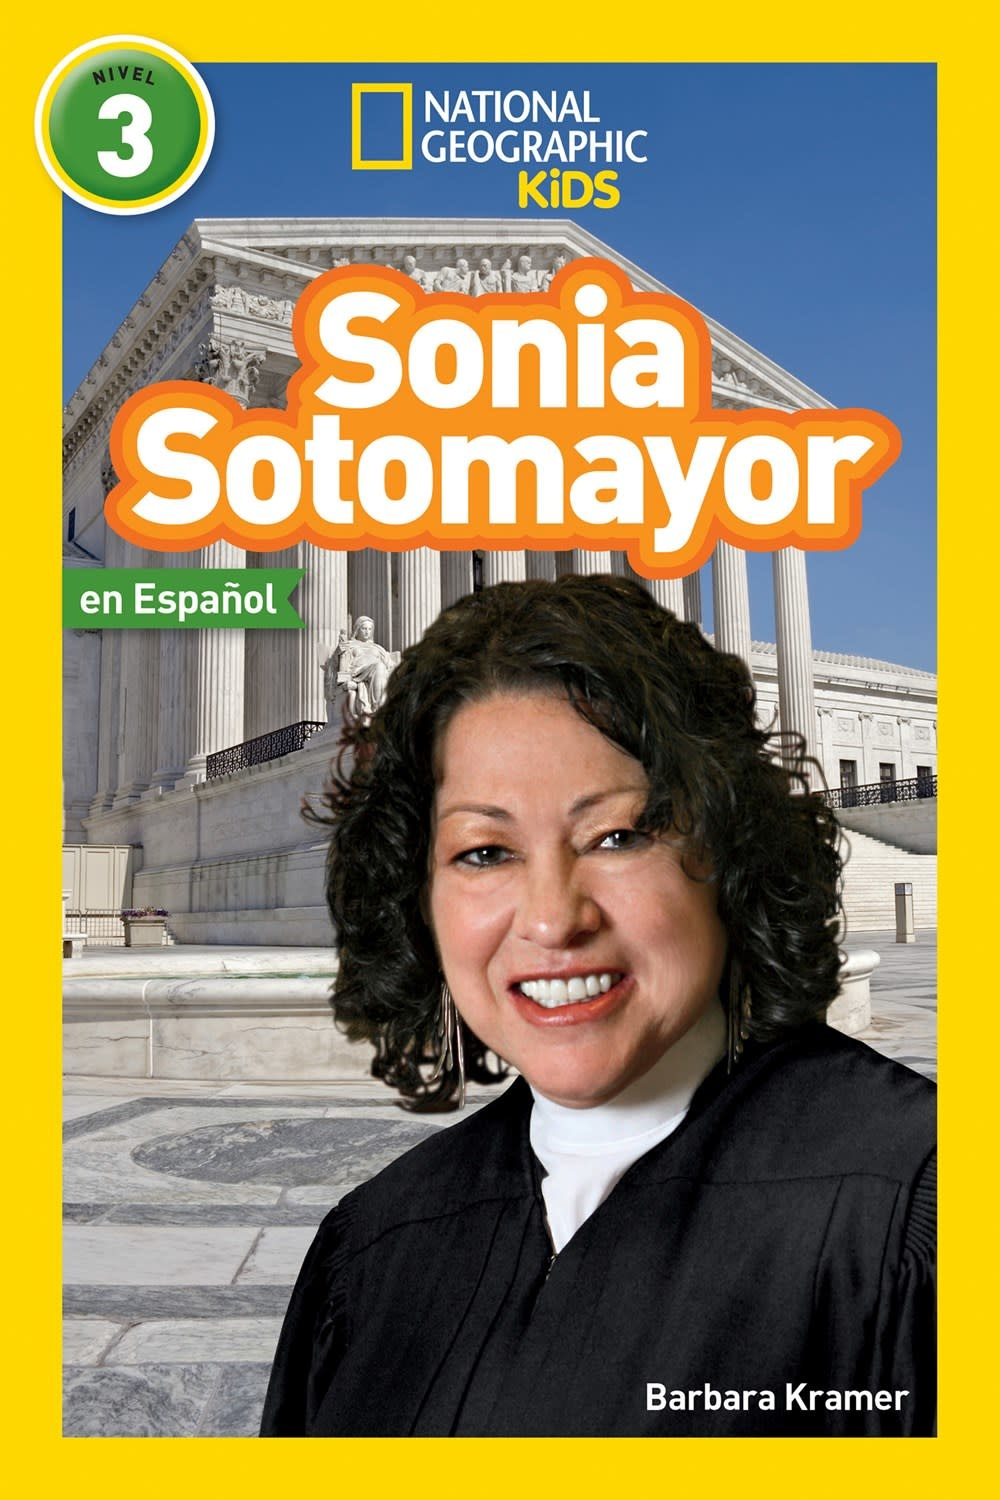 National Geographic Children's Books Sonia Sotomayor (Nat Geo, Spanish, Lvl 3)